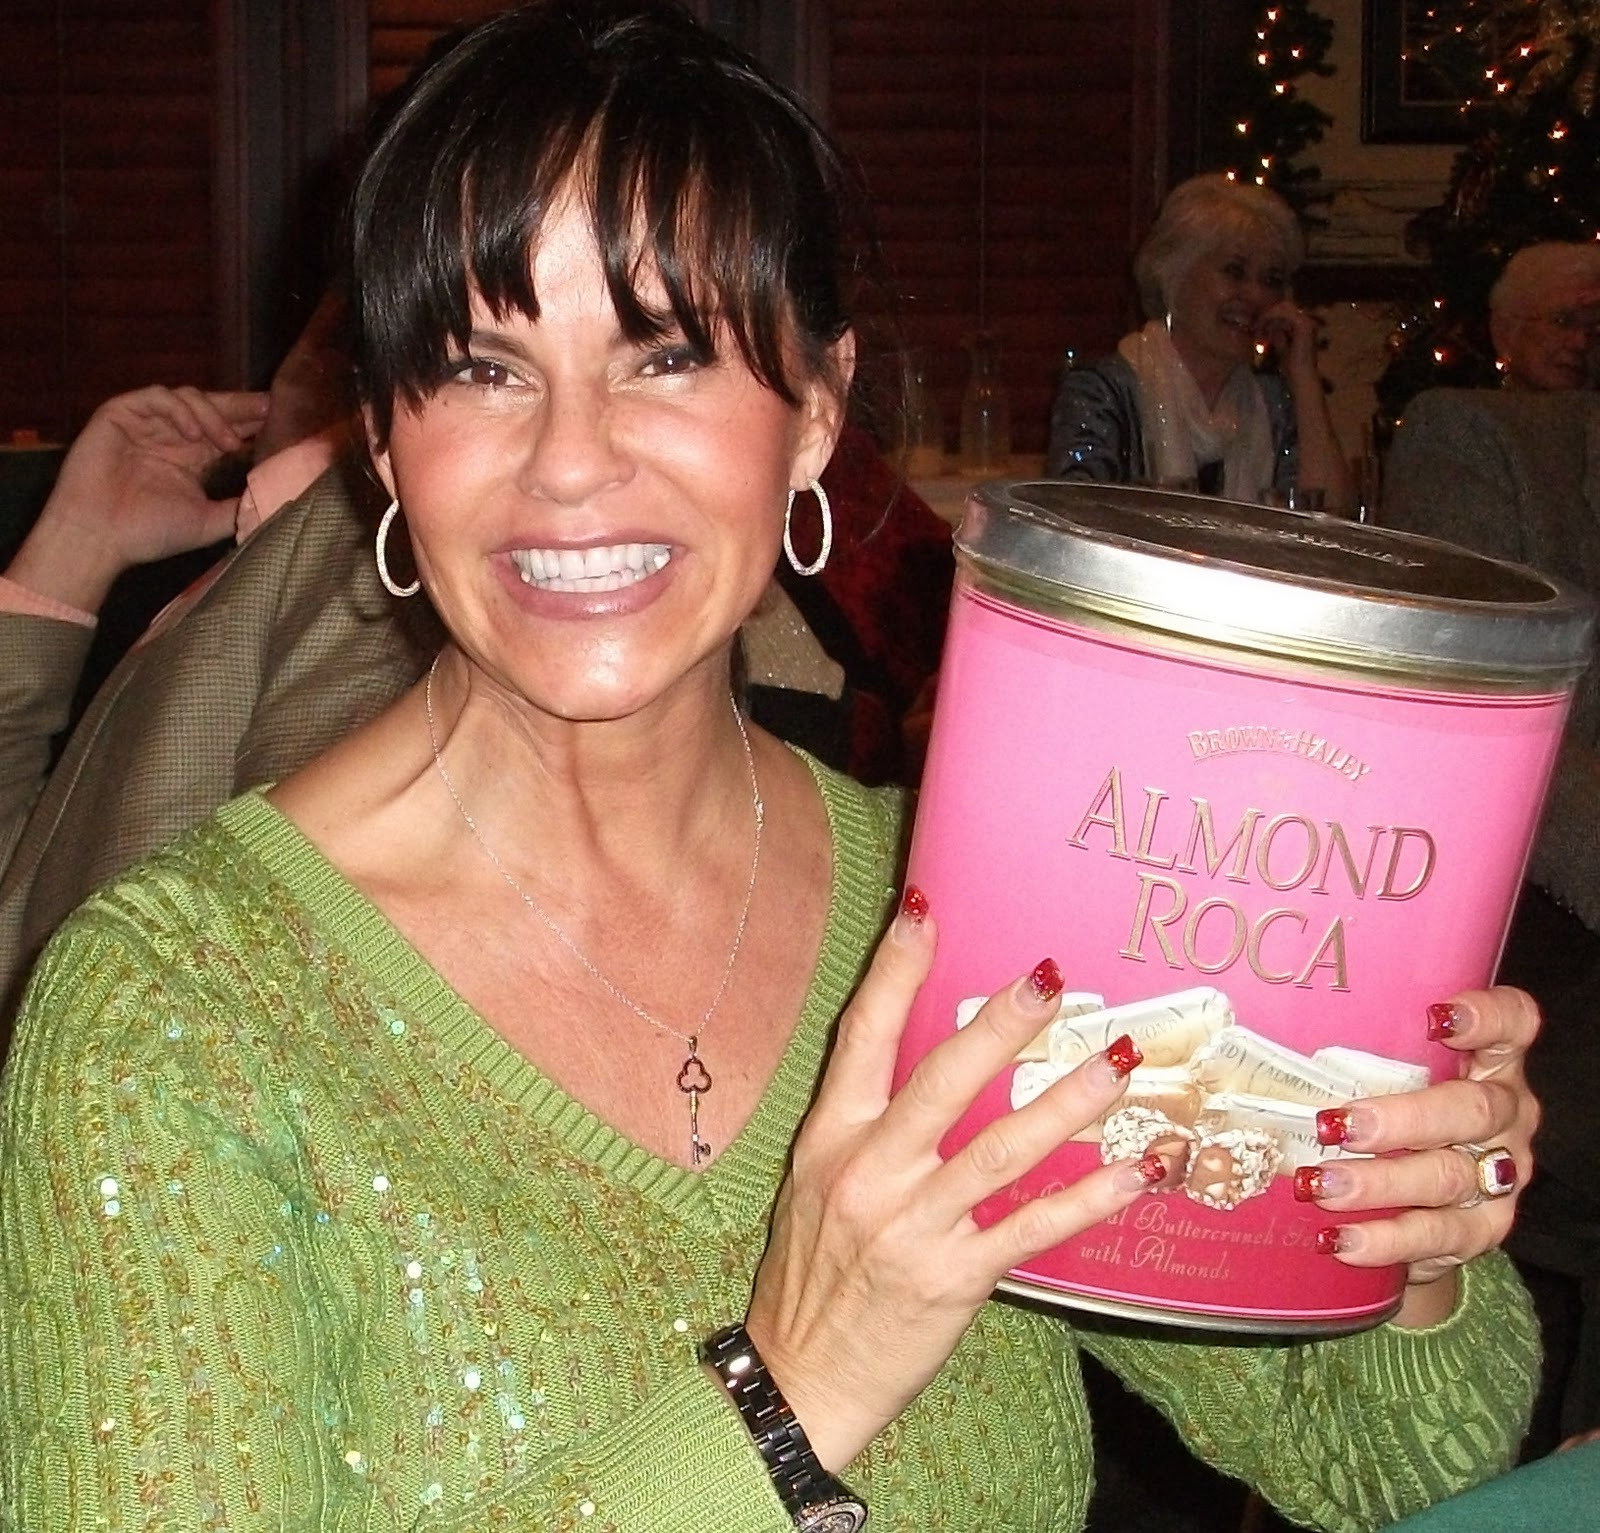 container of almond roca